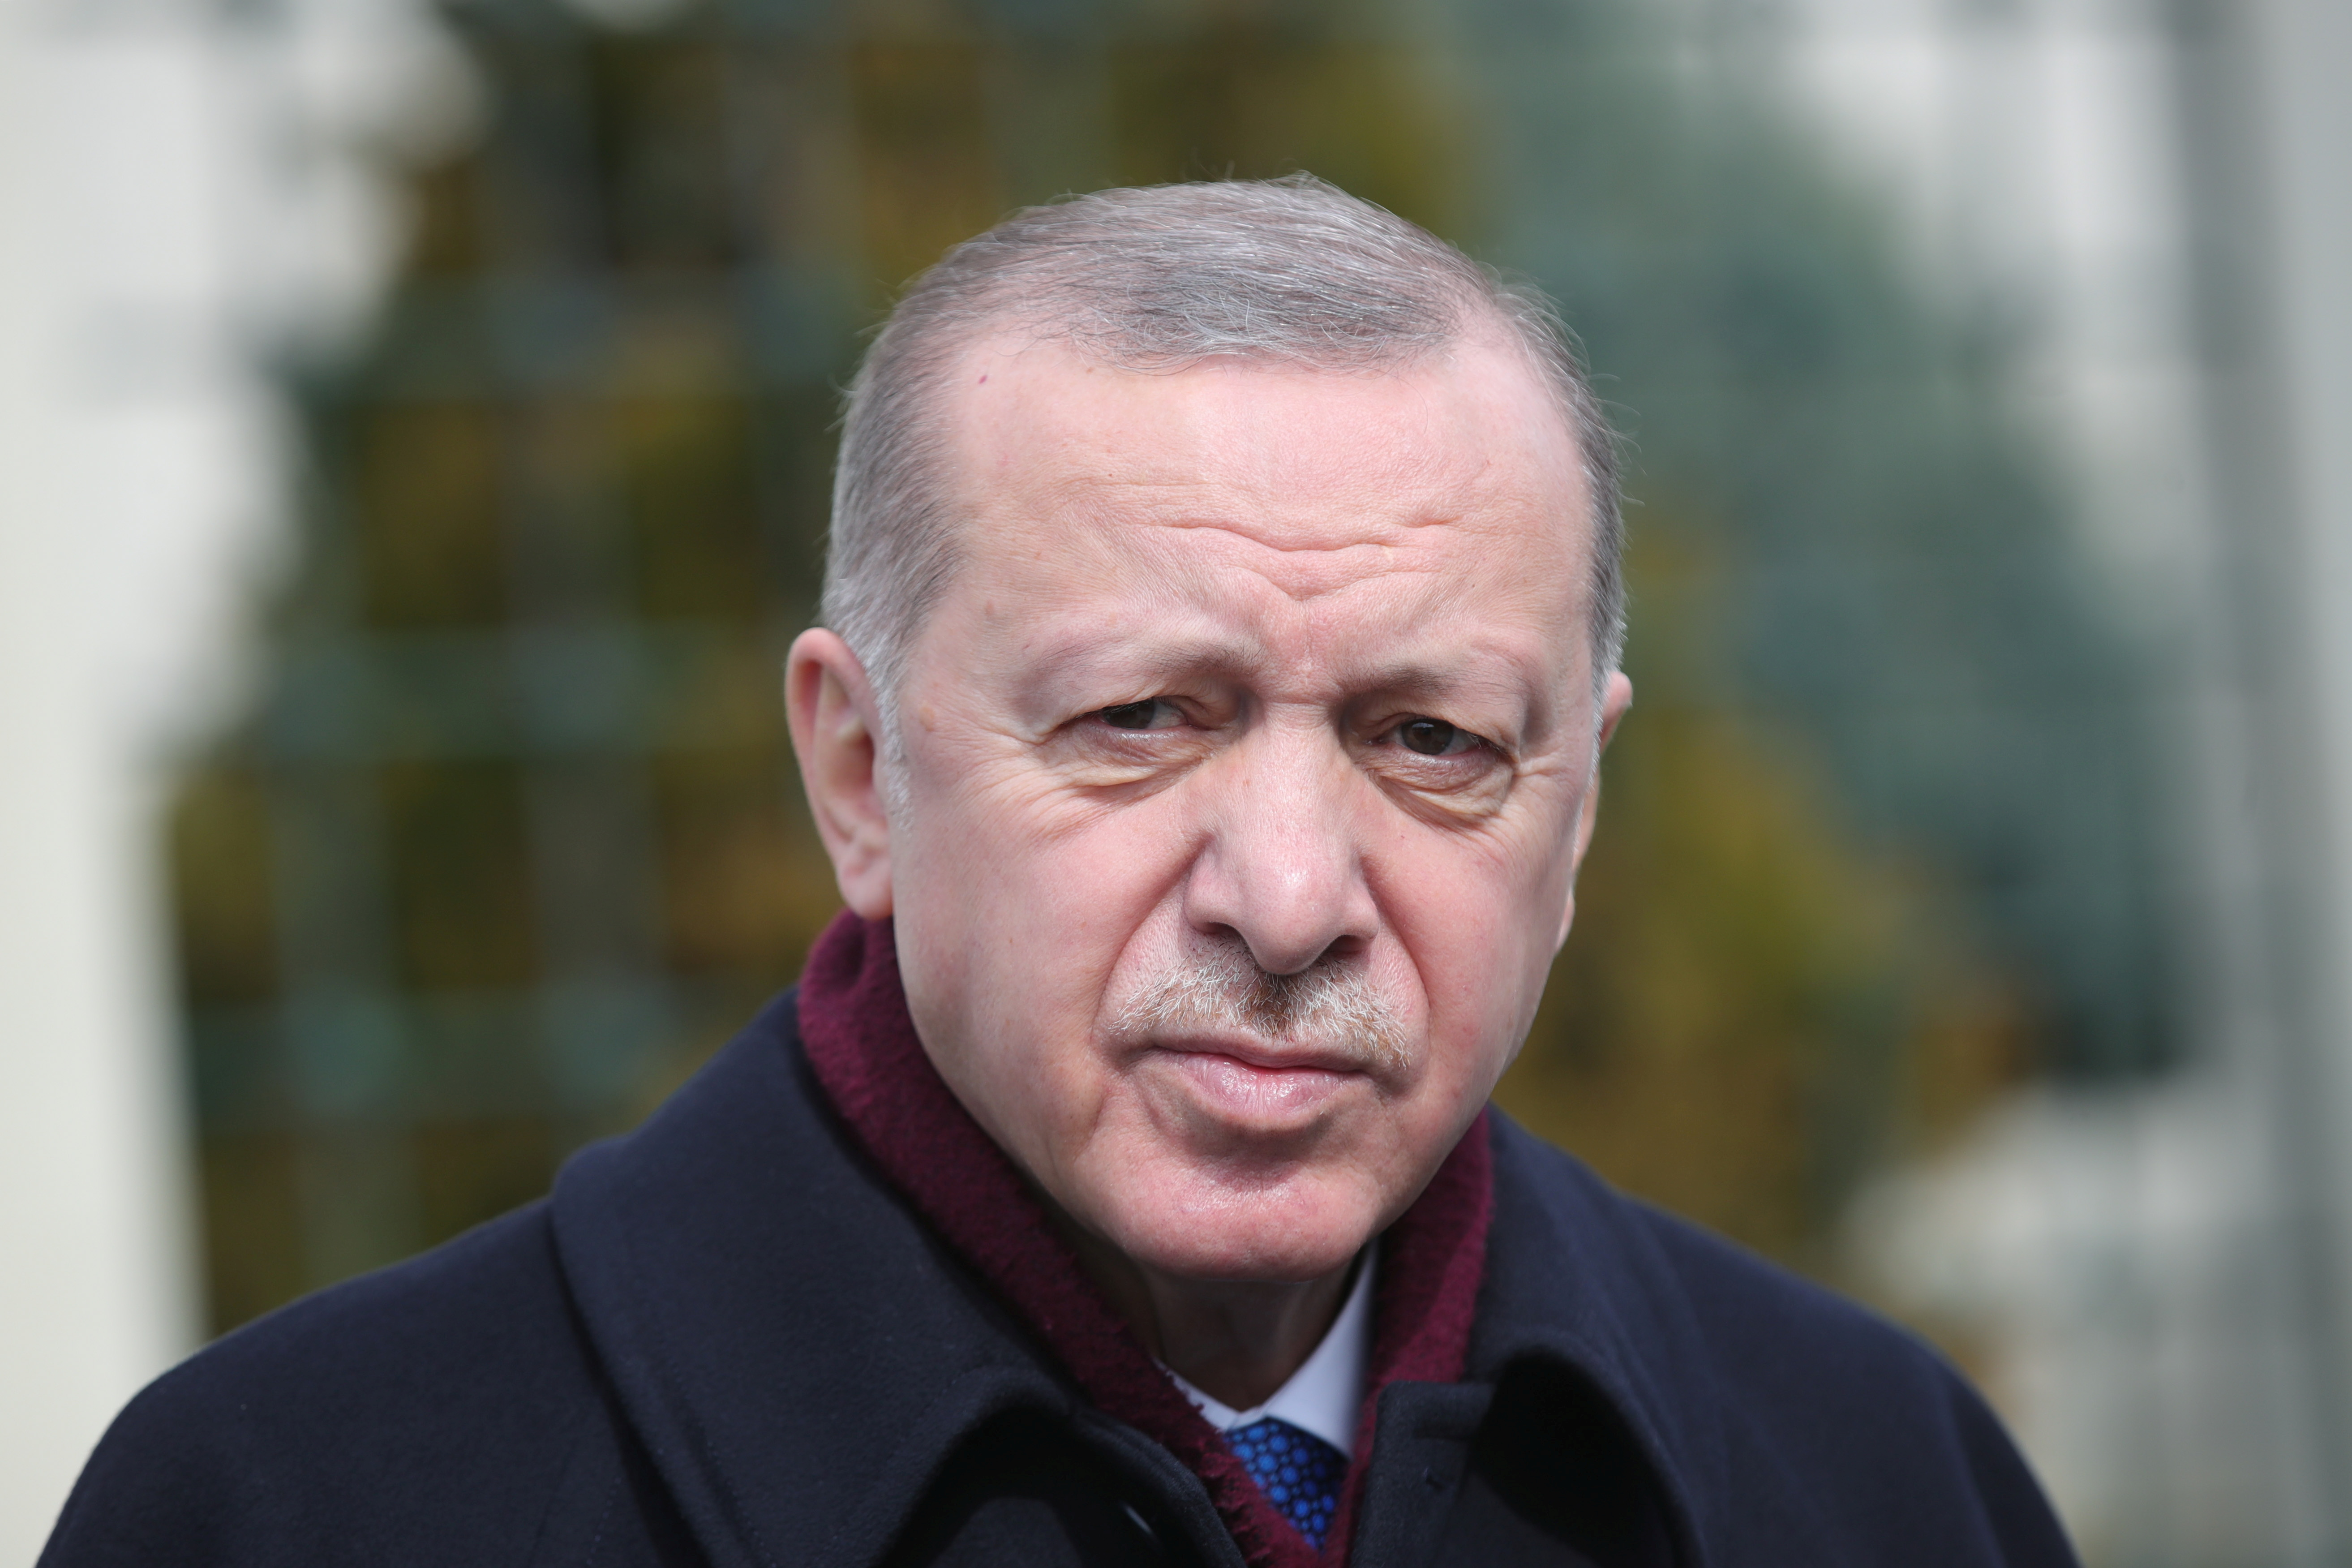 Turkish President Recep Tayyip Erdogan looks on as he addresses the media after the Friday prayers in Istanbul, Turkey March 12, 2021. Presidential Press Office/Handout via REUTERS   ATTENTION EDITORS - THIS PICTURE WAS PROVIDED BY A THIRD PARTY. NO RESALES. NO ARCHIVE